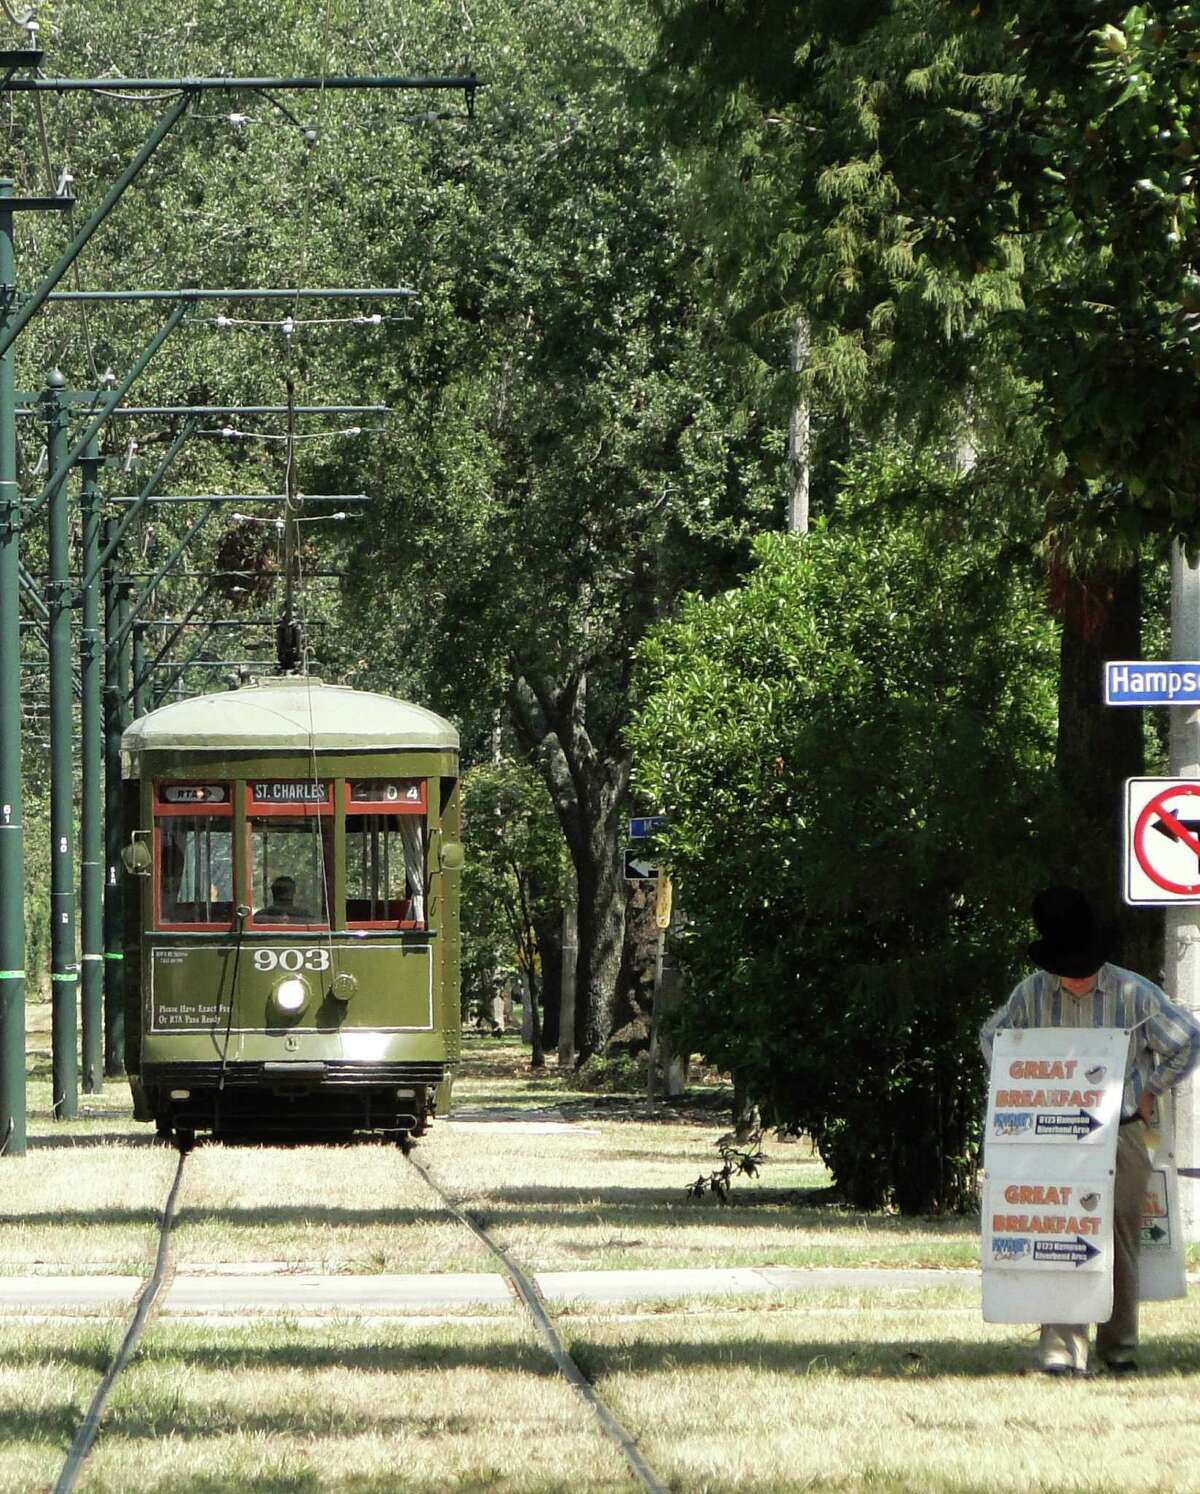 Riding the St. Charles streetcar is an easy way to sightsee in the Garden District of New Orleans.